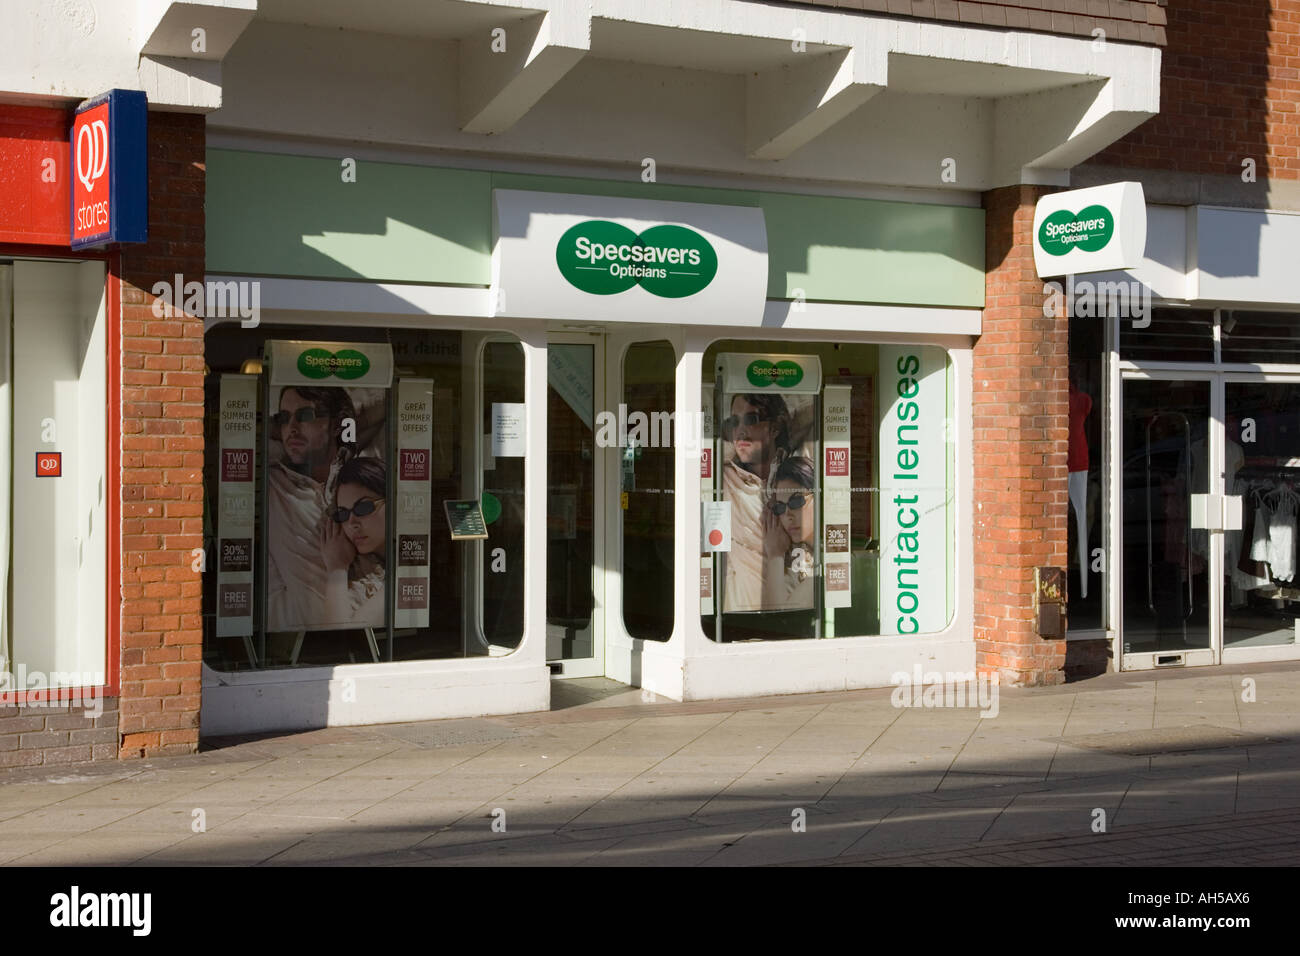 specsavers opticians shop front in shopping mall stock photo specsavers opticians in stowmarket suffolk uk england stock photo